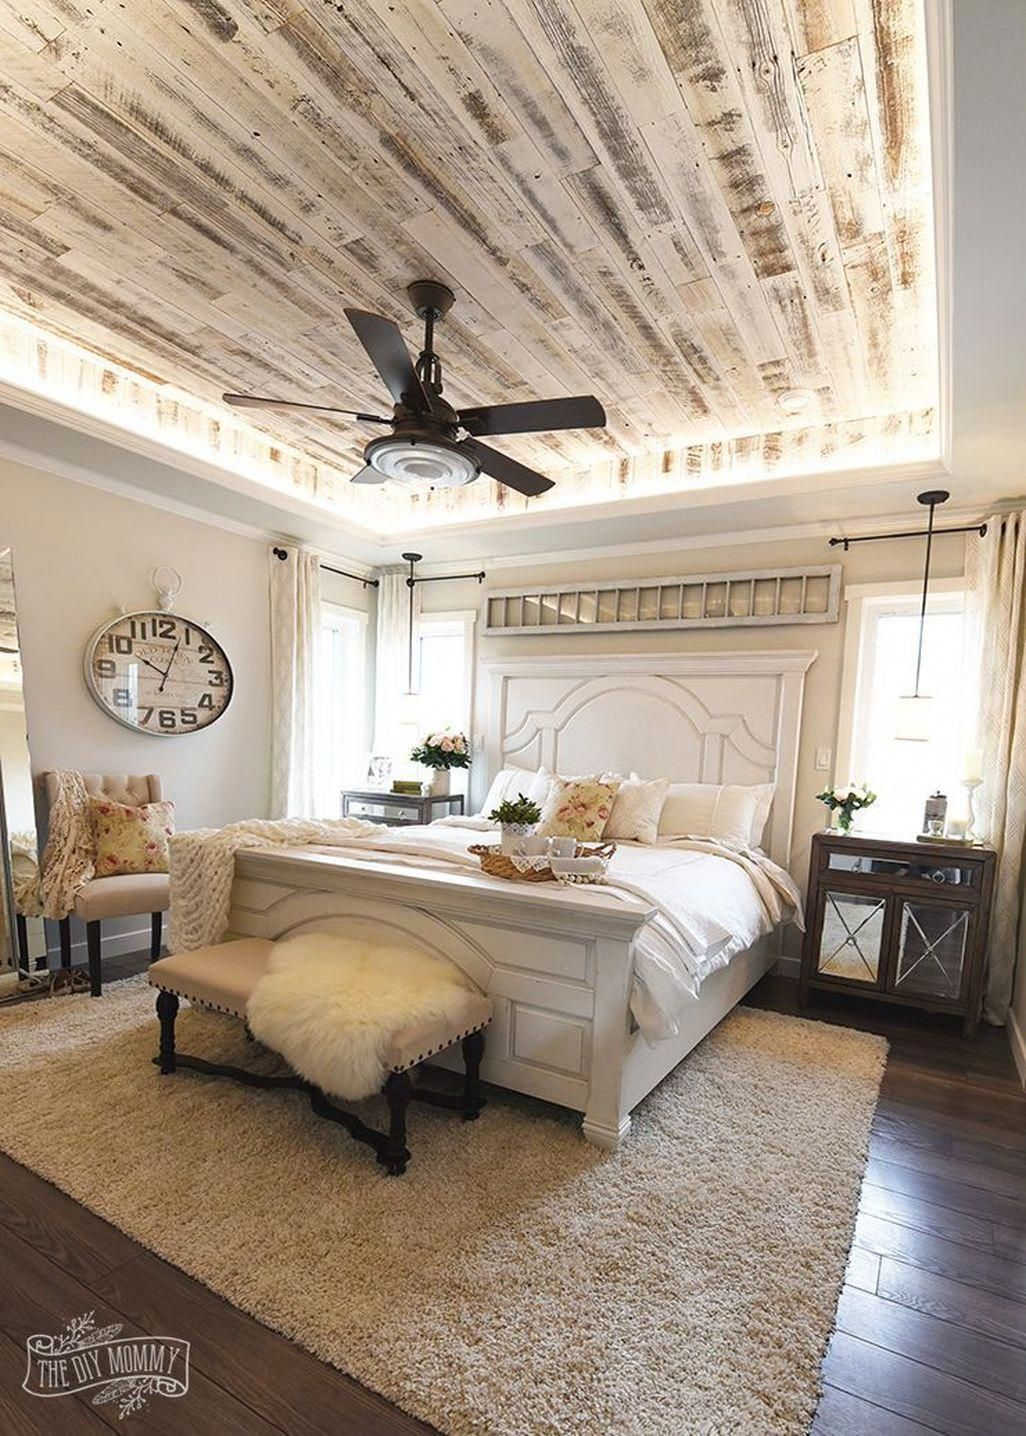 Stunning French Country Living Room Design Ideas 40 Country Master Bedroom French Country Master Bedroom Master Bedroom Remodel